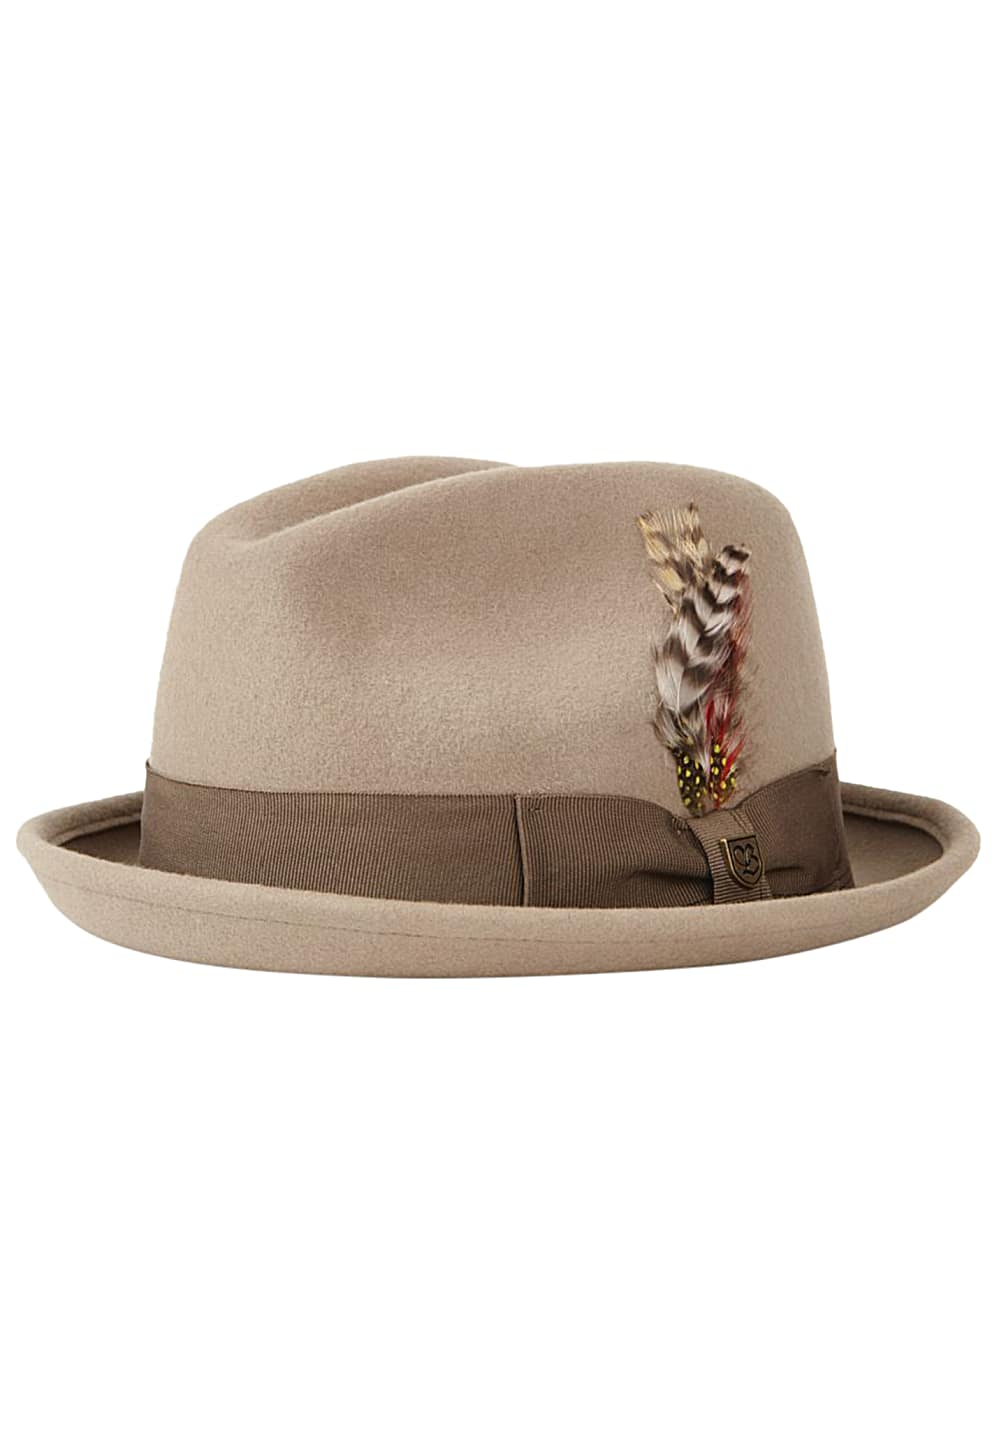 Muetzen für Frauen - Brixton Gain Fedora Hut Braun  - Onlineshop Planet Sports